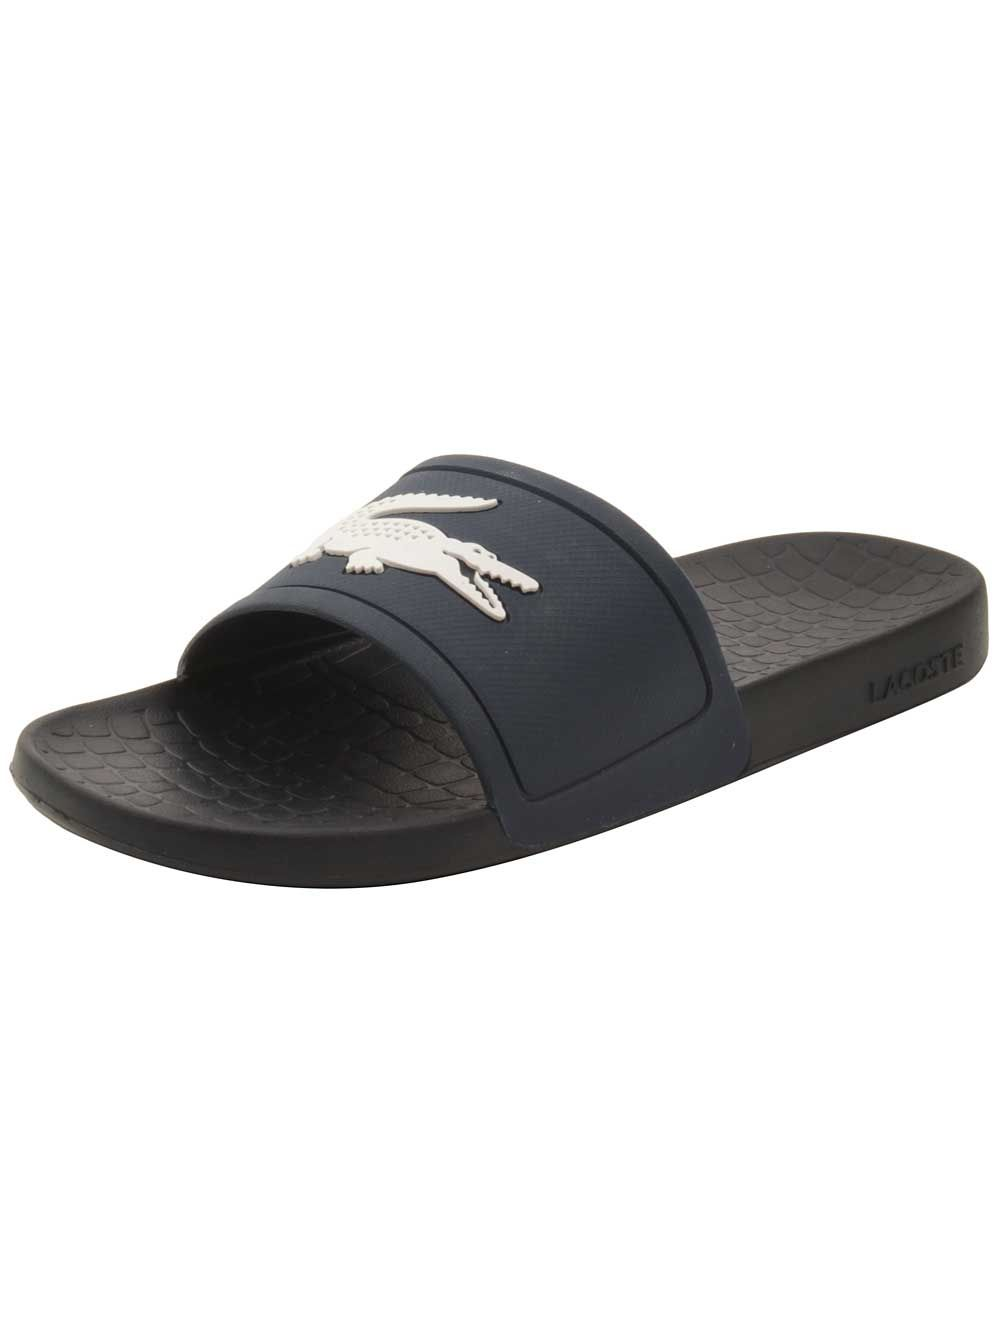 bb7589d1b LACOSTE LACOSTE MEN S FRAISIER 318 1 P SLIDE SANDAL.  lacoste  shoes ...